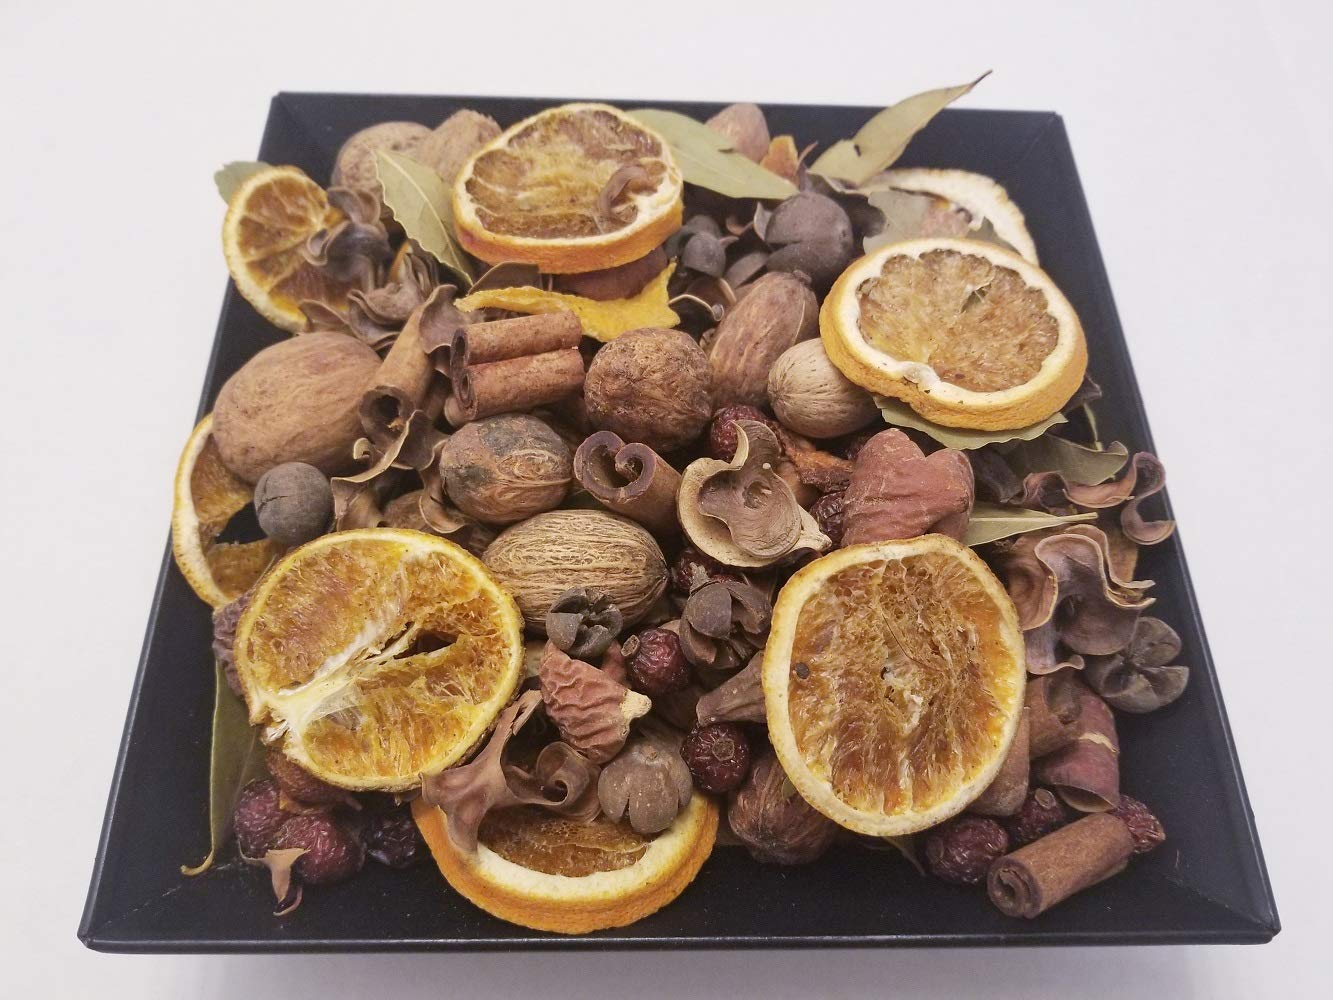 Nature's Lot (Florida Orange Potpourri Handmade In Lancaster County PA. Dried Oranges, Cinnamon Sticks, and Beautiful Botanicals, 28-32 oz by volume by Nature's Lot